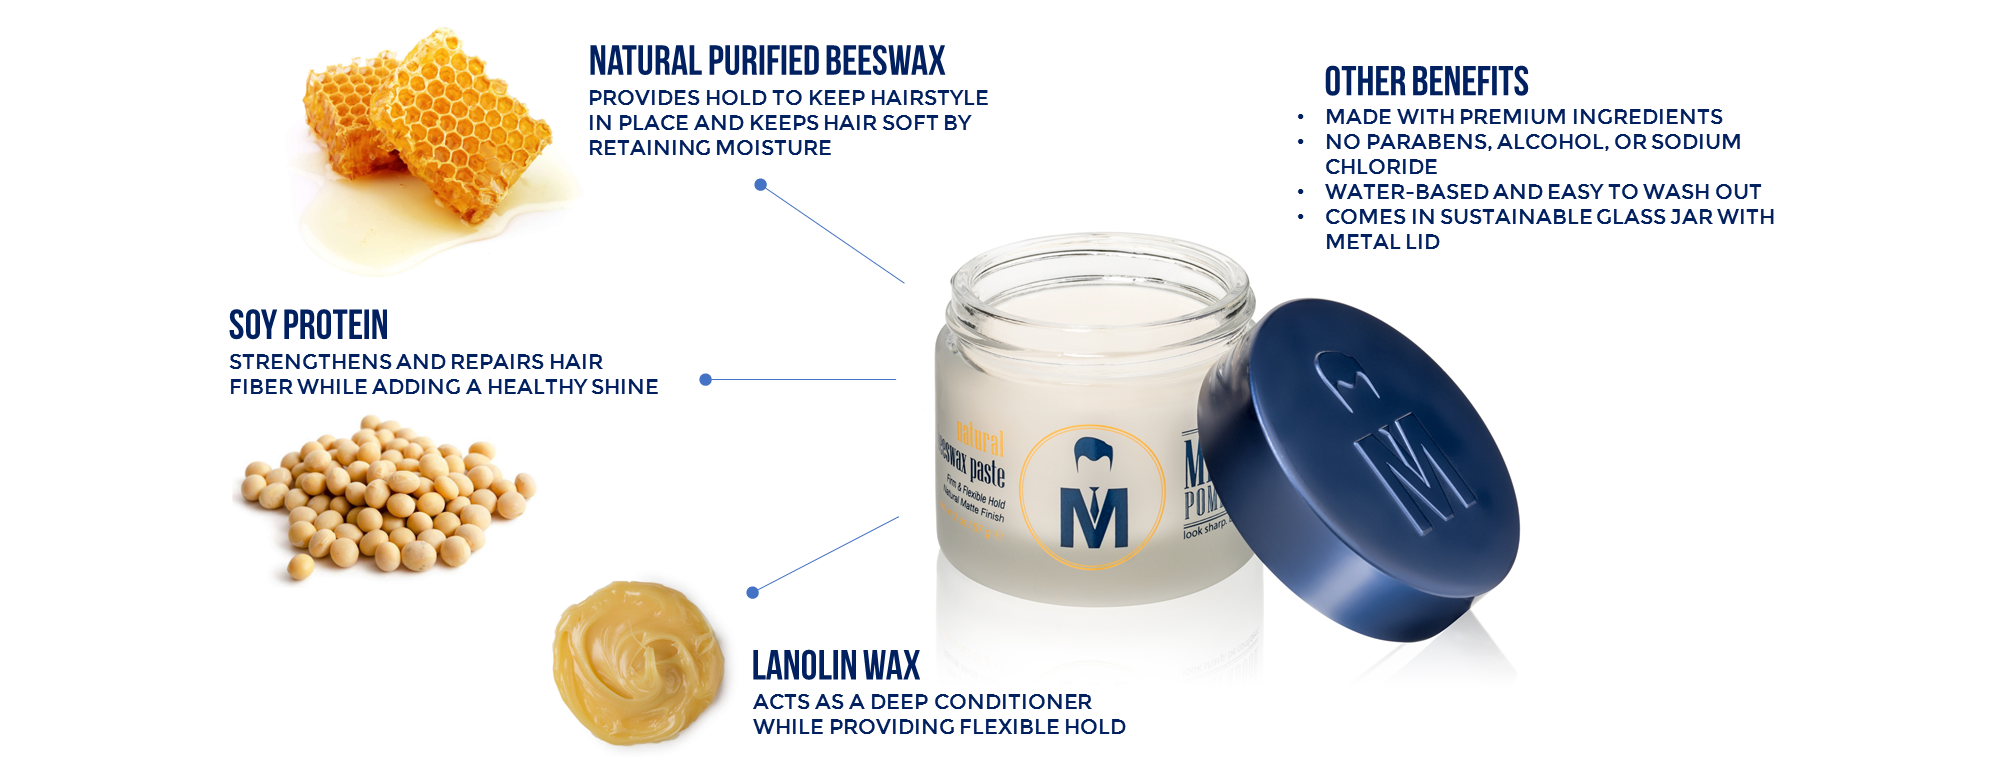 Premium Ingredients, No Parabens, Alcohol, or Sodium Chloride.  Water based and easy to wash out.  Comes in sustainable glass jar with metal lid.  Purified Beeswax provides hold to keep hairstyle in place and keeps hair soft by retaining moisture.  Soy protein strengthens and repairs hair fiber while adding a healthy shine. Lanolin wax acts as a deep conditioner while providing flexible hold.